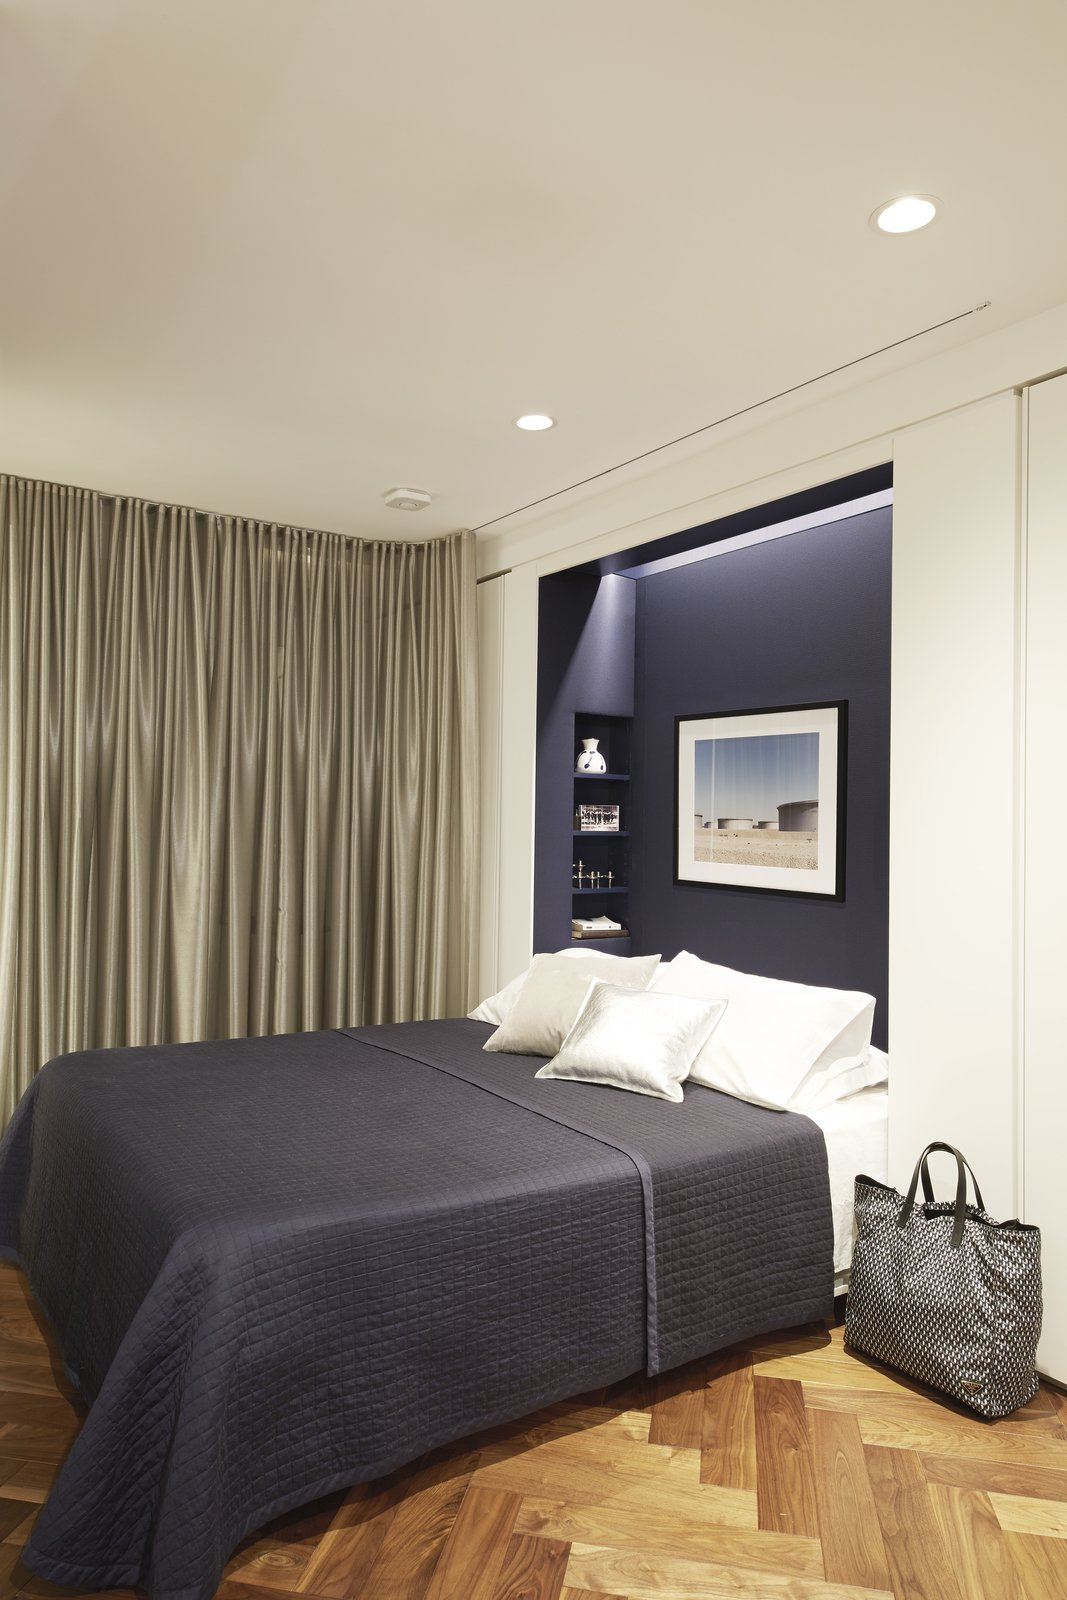 Bedroom, Bed, Medium Hardwood Floor, and Recessed Lighting The Murphy bed niche is lined in deep blue fabric by Knoll.  Best Photos from In Just 450 Square Feet, A New York Architect Crafts a Multifunctional Apartment of His Own